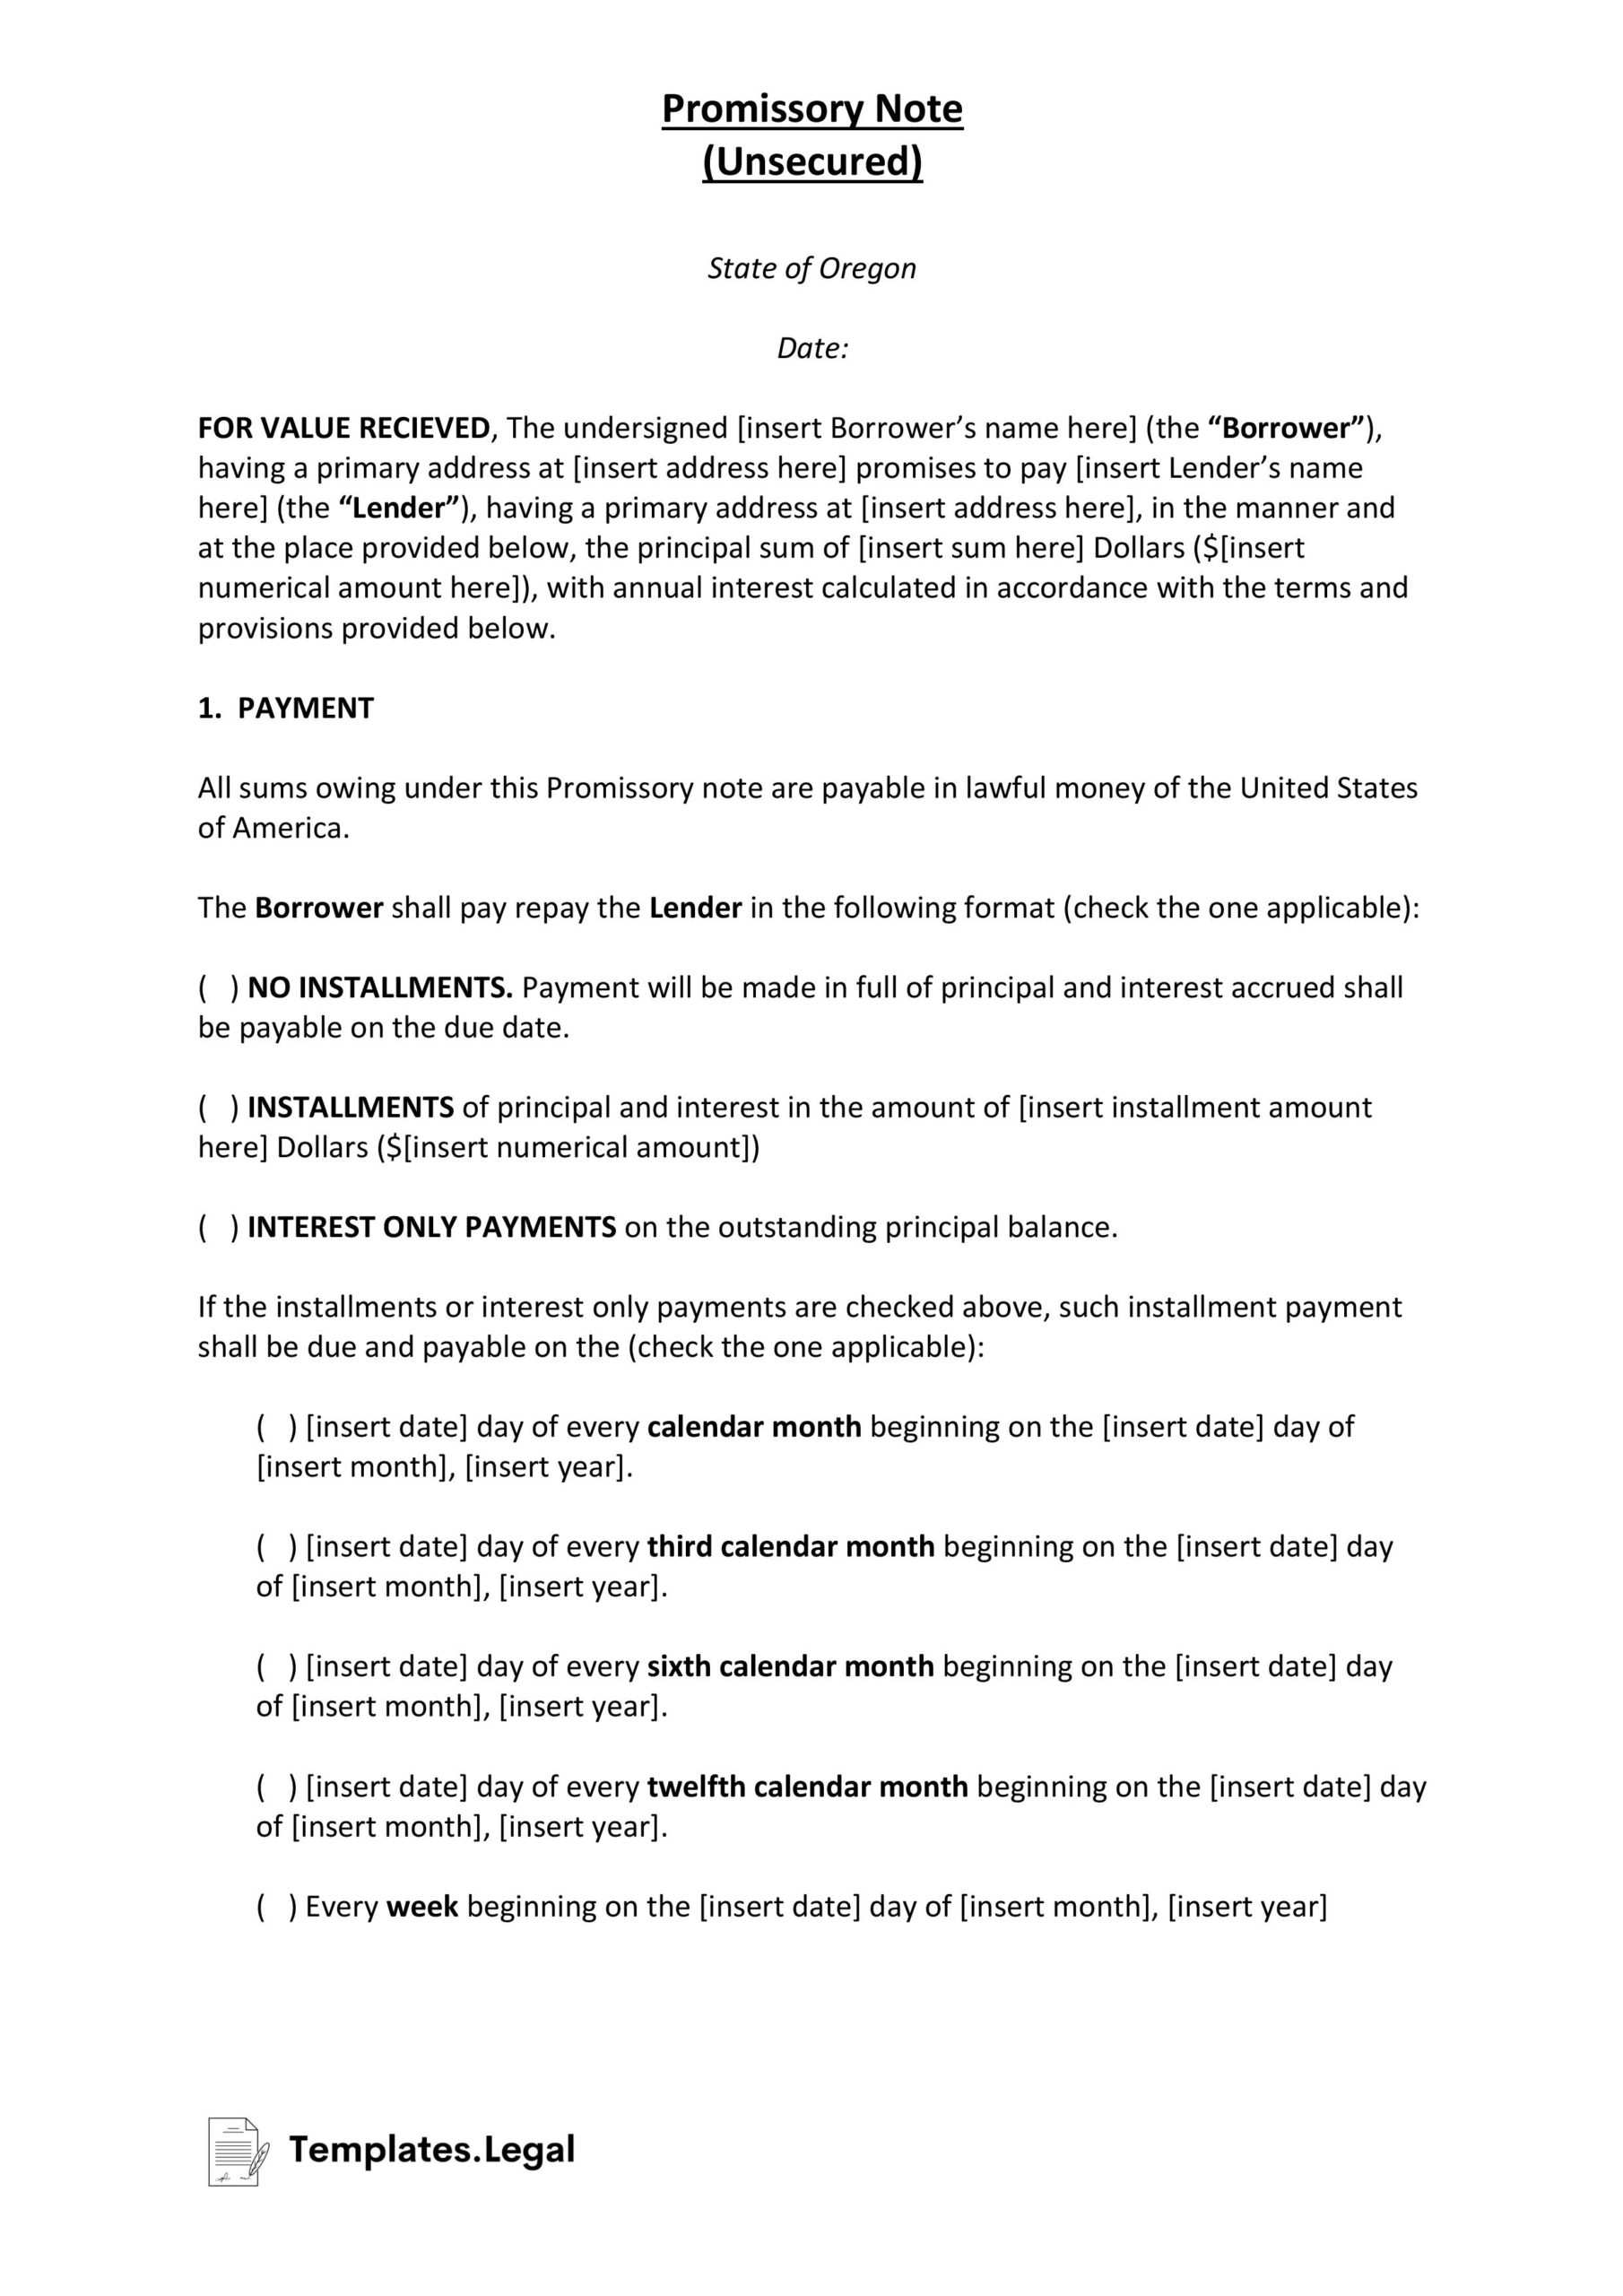 Oregon Unsecured Promissory Note - Templates.Legal